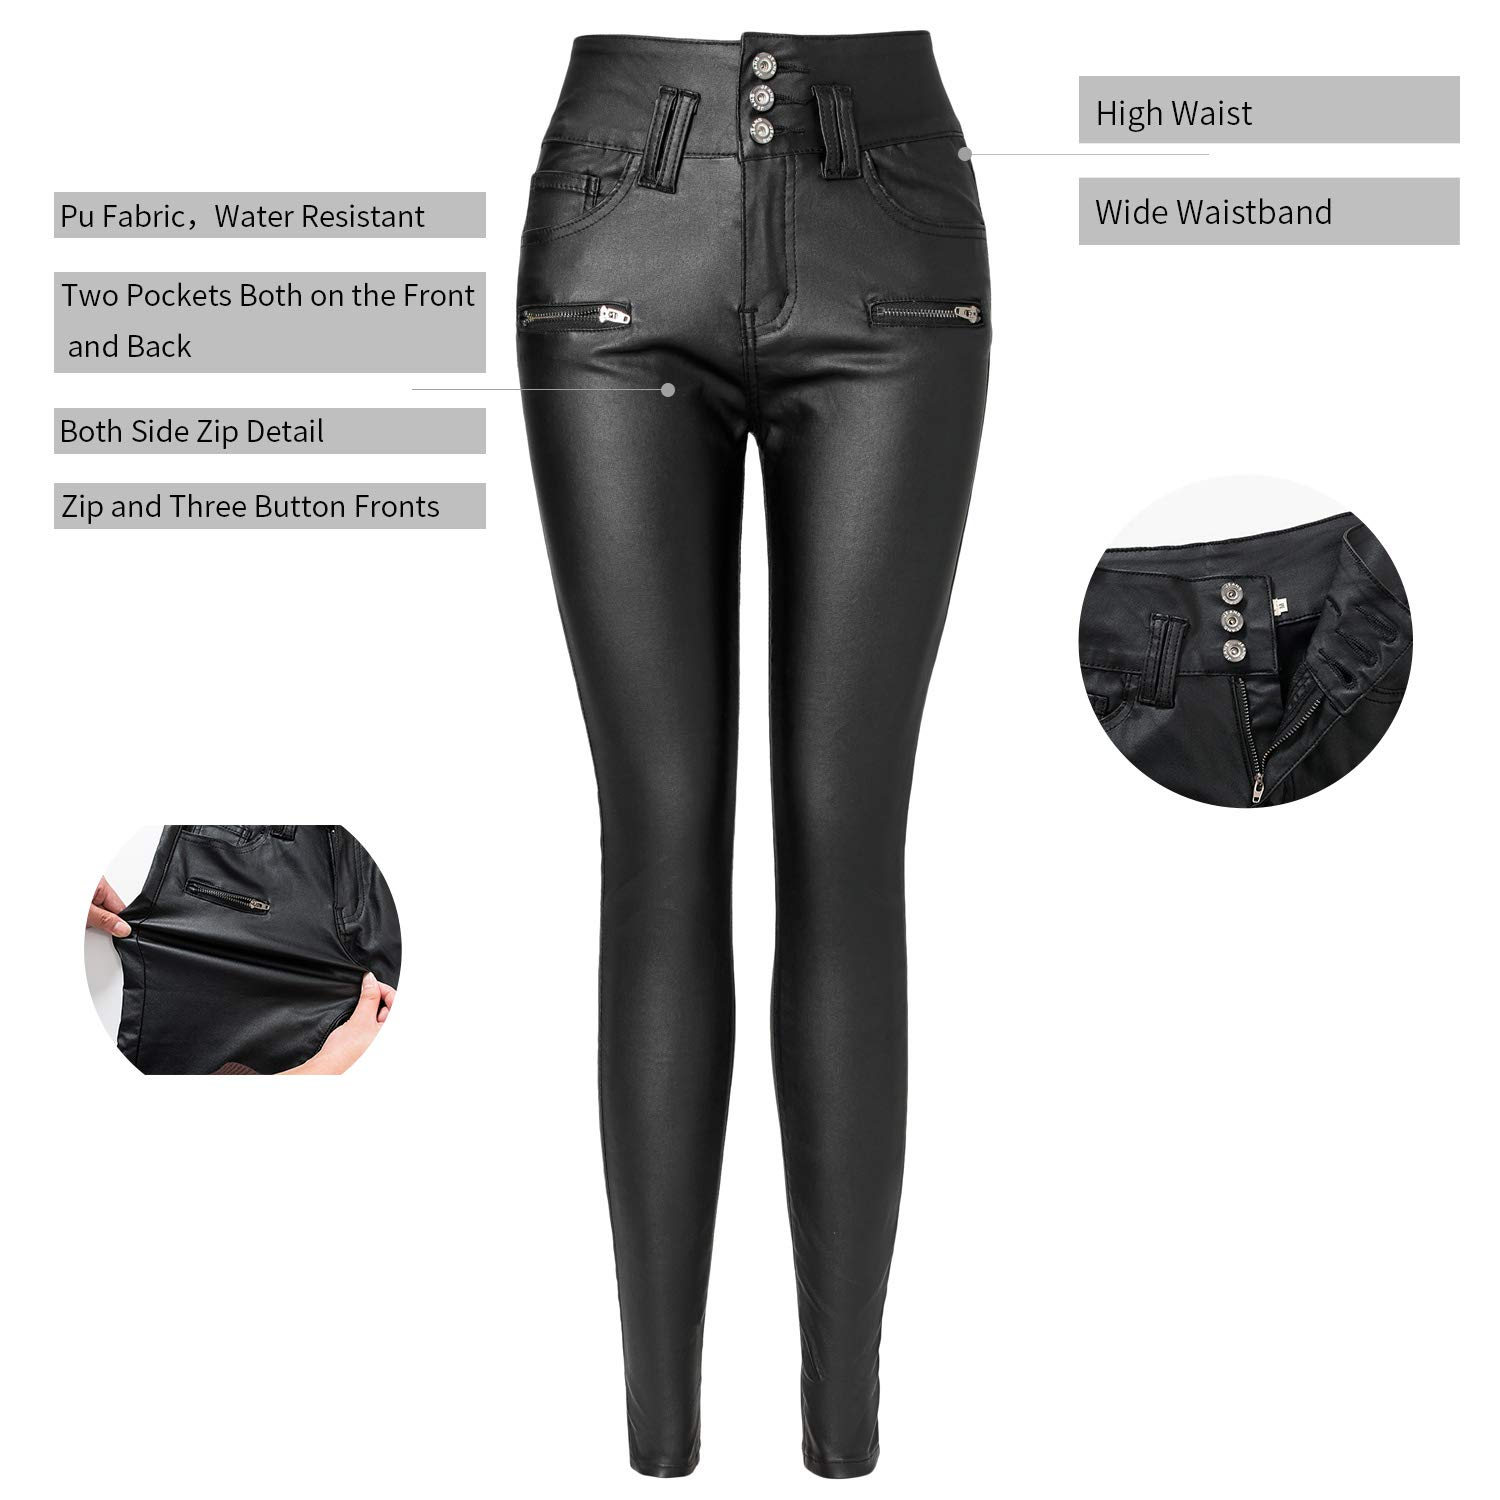 d4fe8e5c893166 Ecupper Womens Black Faux Leather Pants High Waisted Skinny Coated Leggings  Petite/Regular/Tall, 26